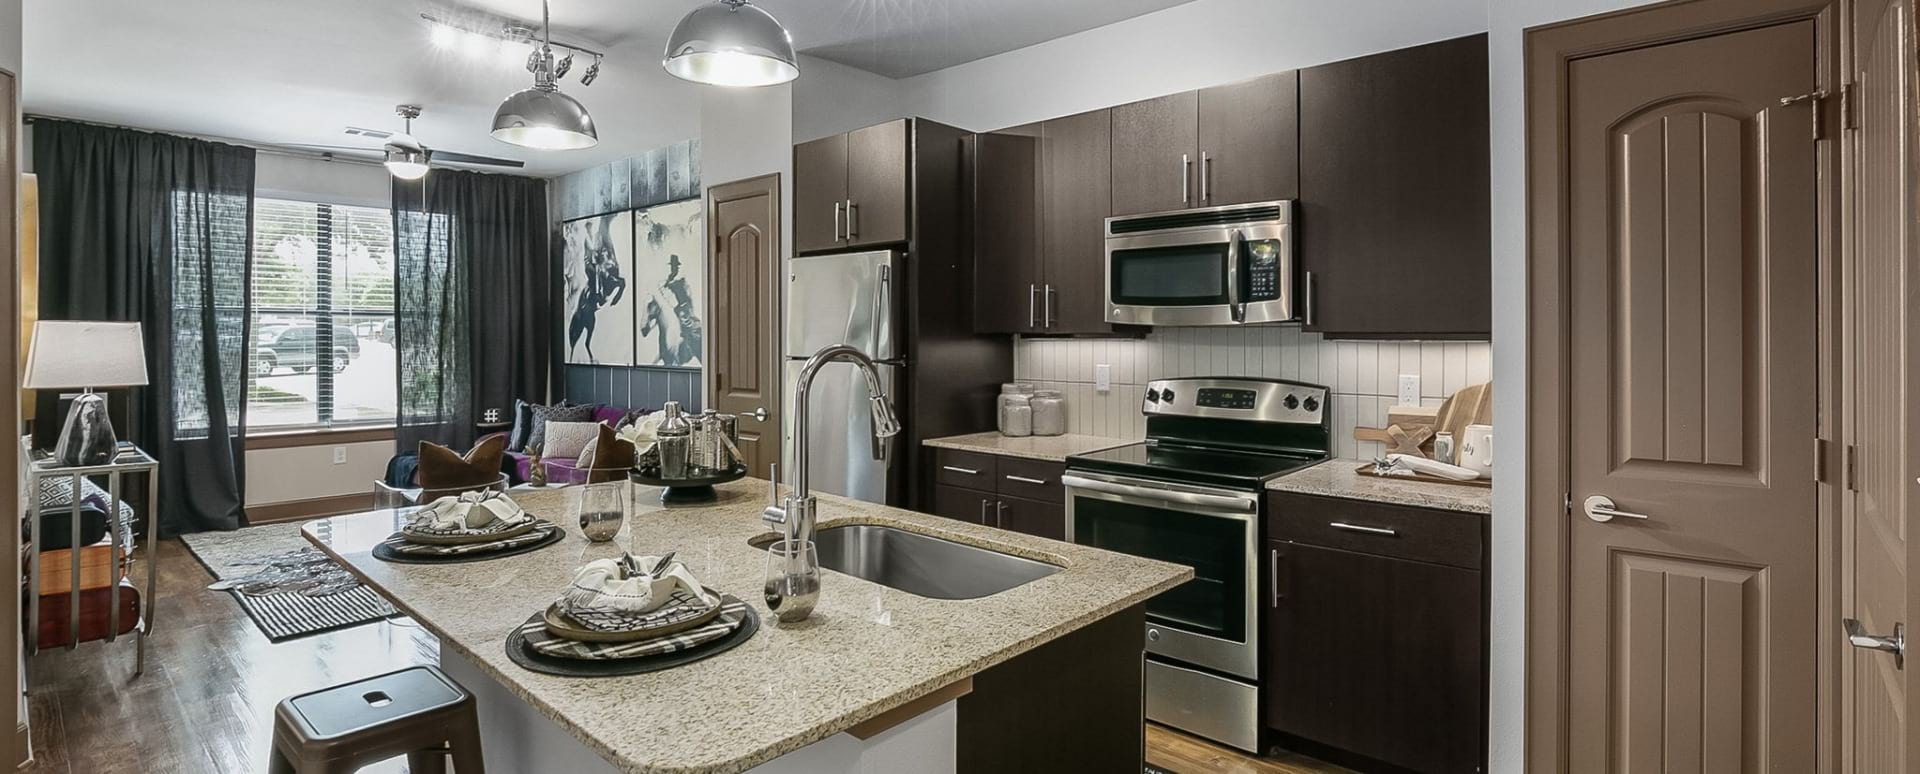 Kitchen island at Frisco apartments for rent